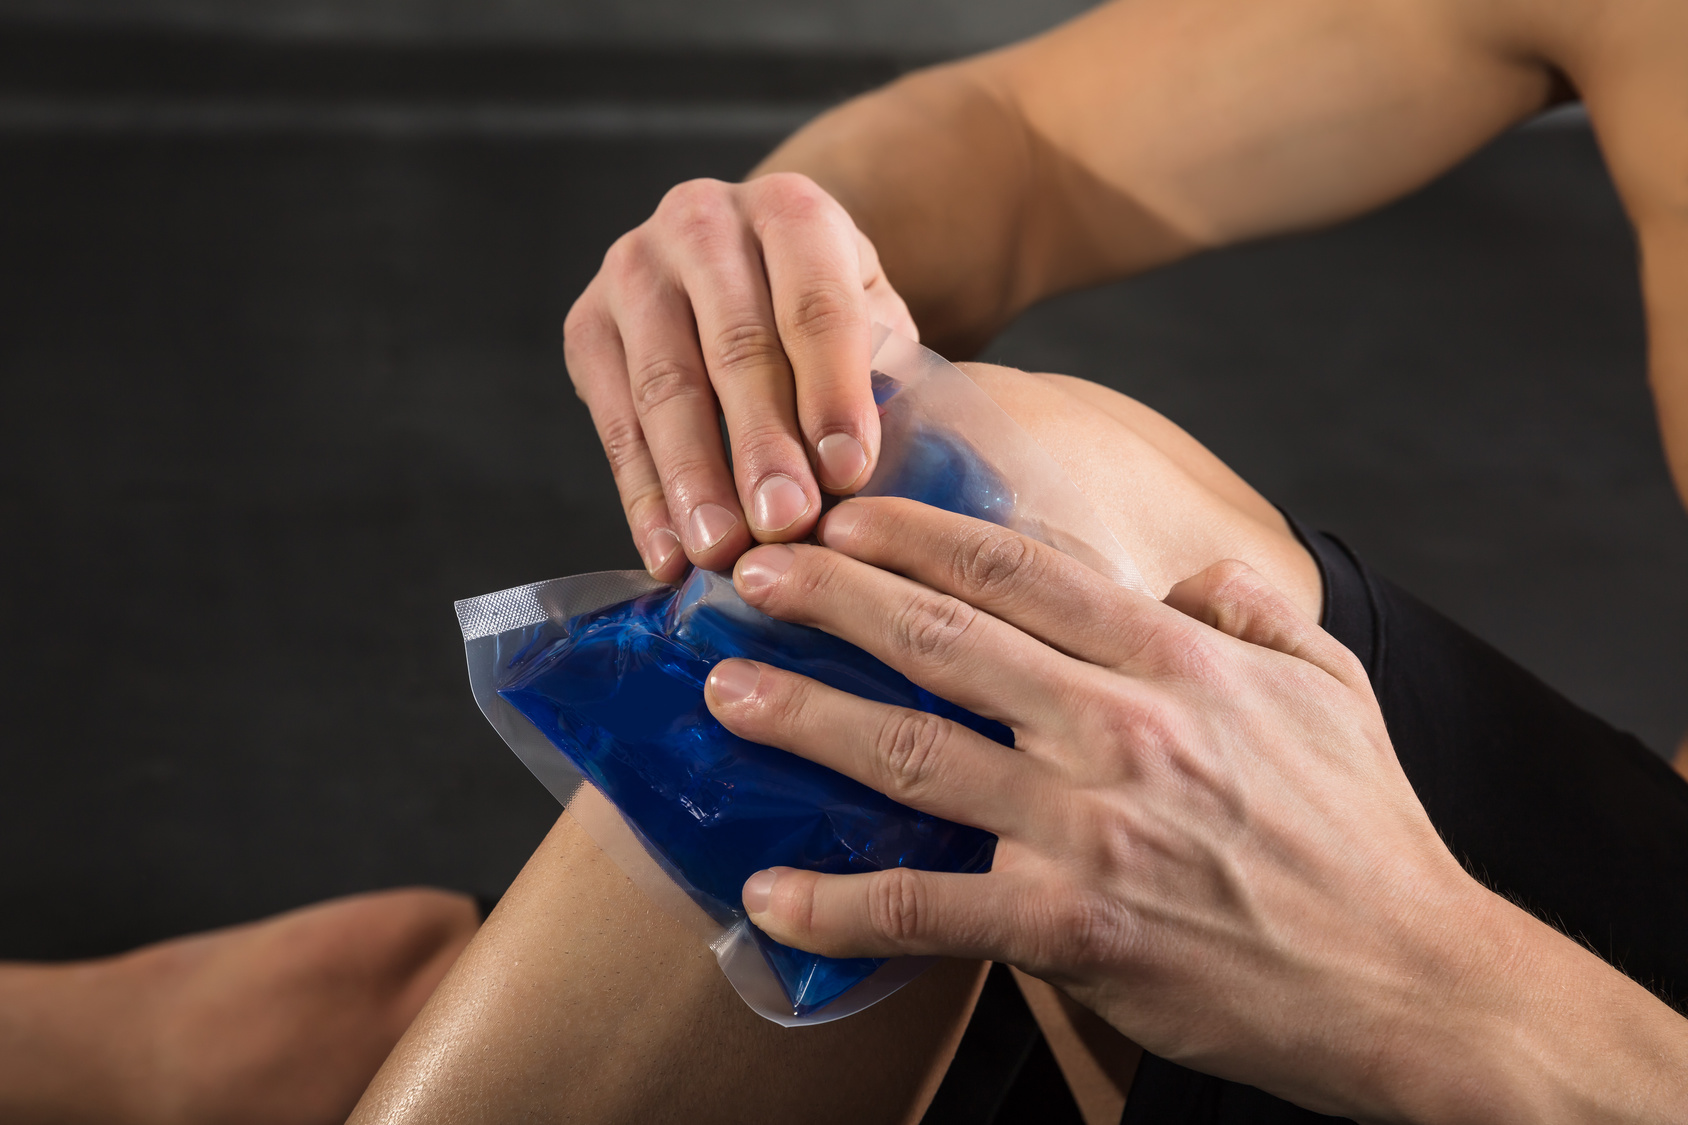 Heat vs. Ice: Which Works Best for Treating Injuries?